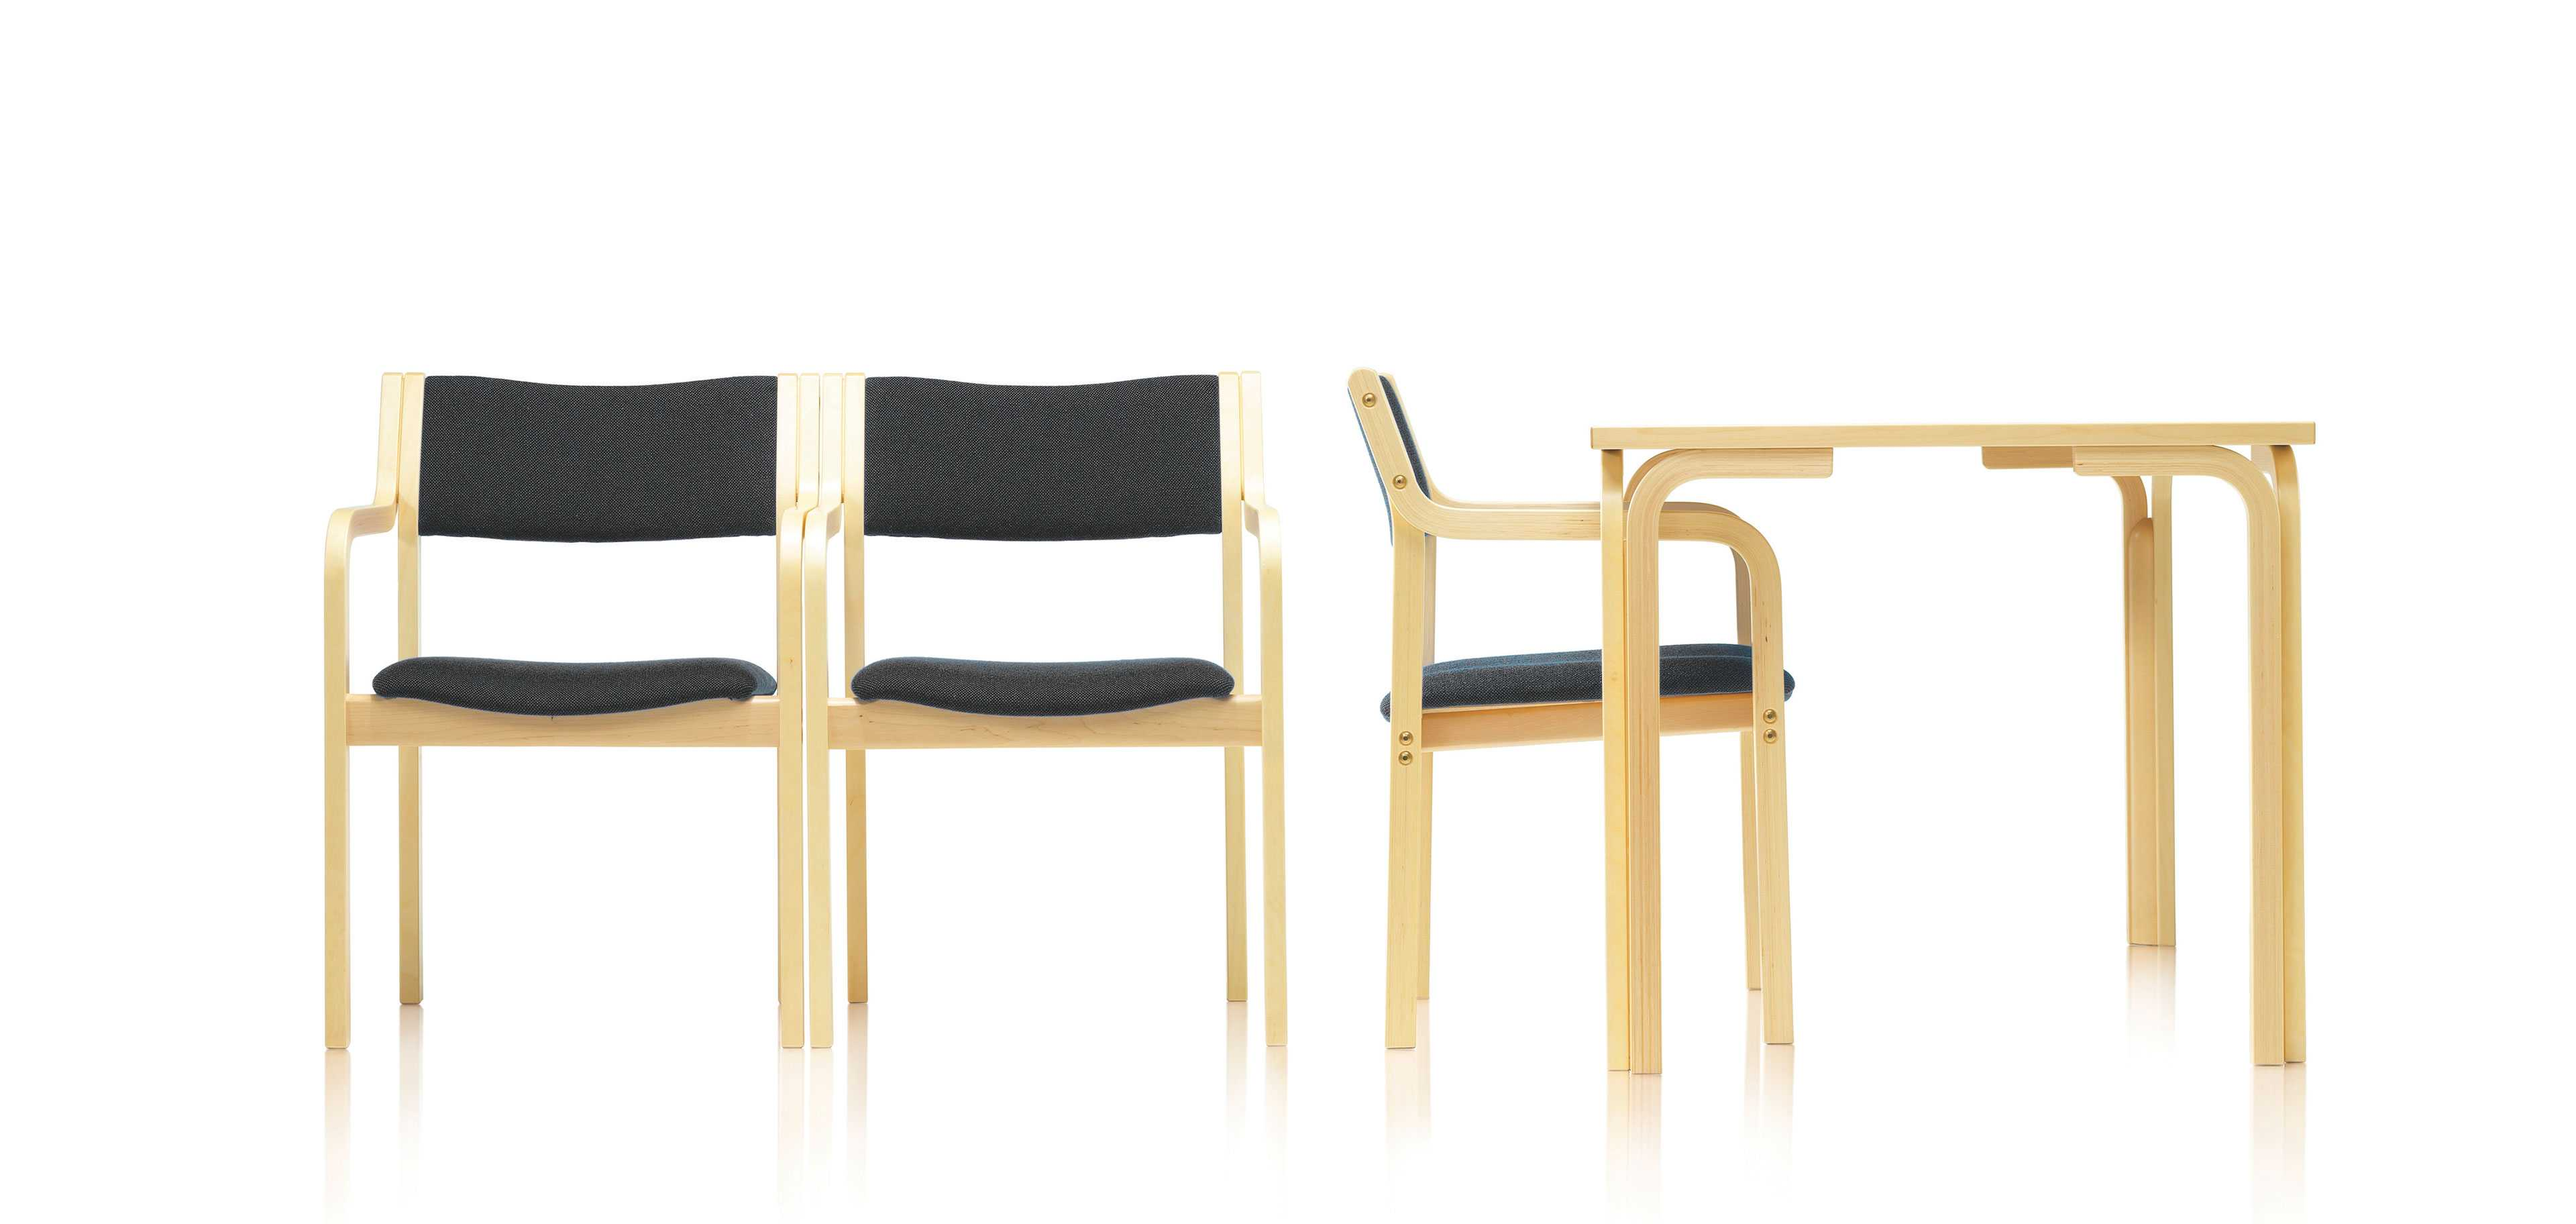 Kari chairs and a table by Martela